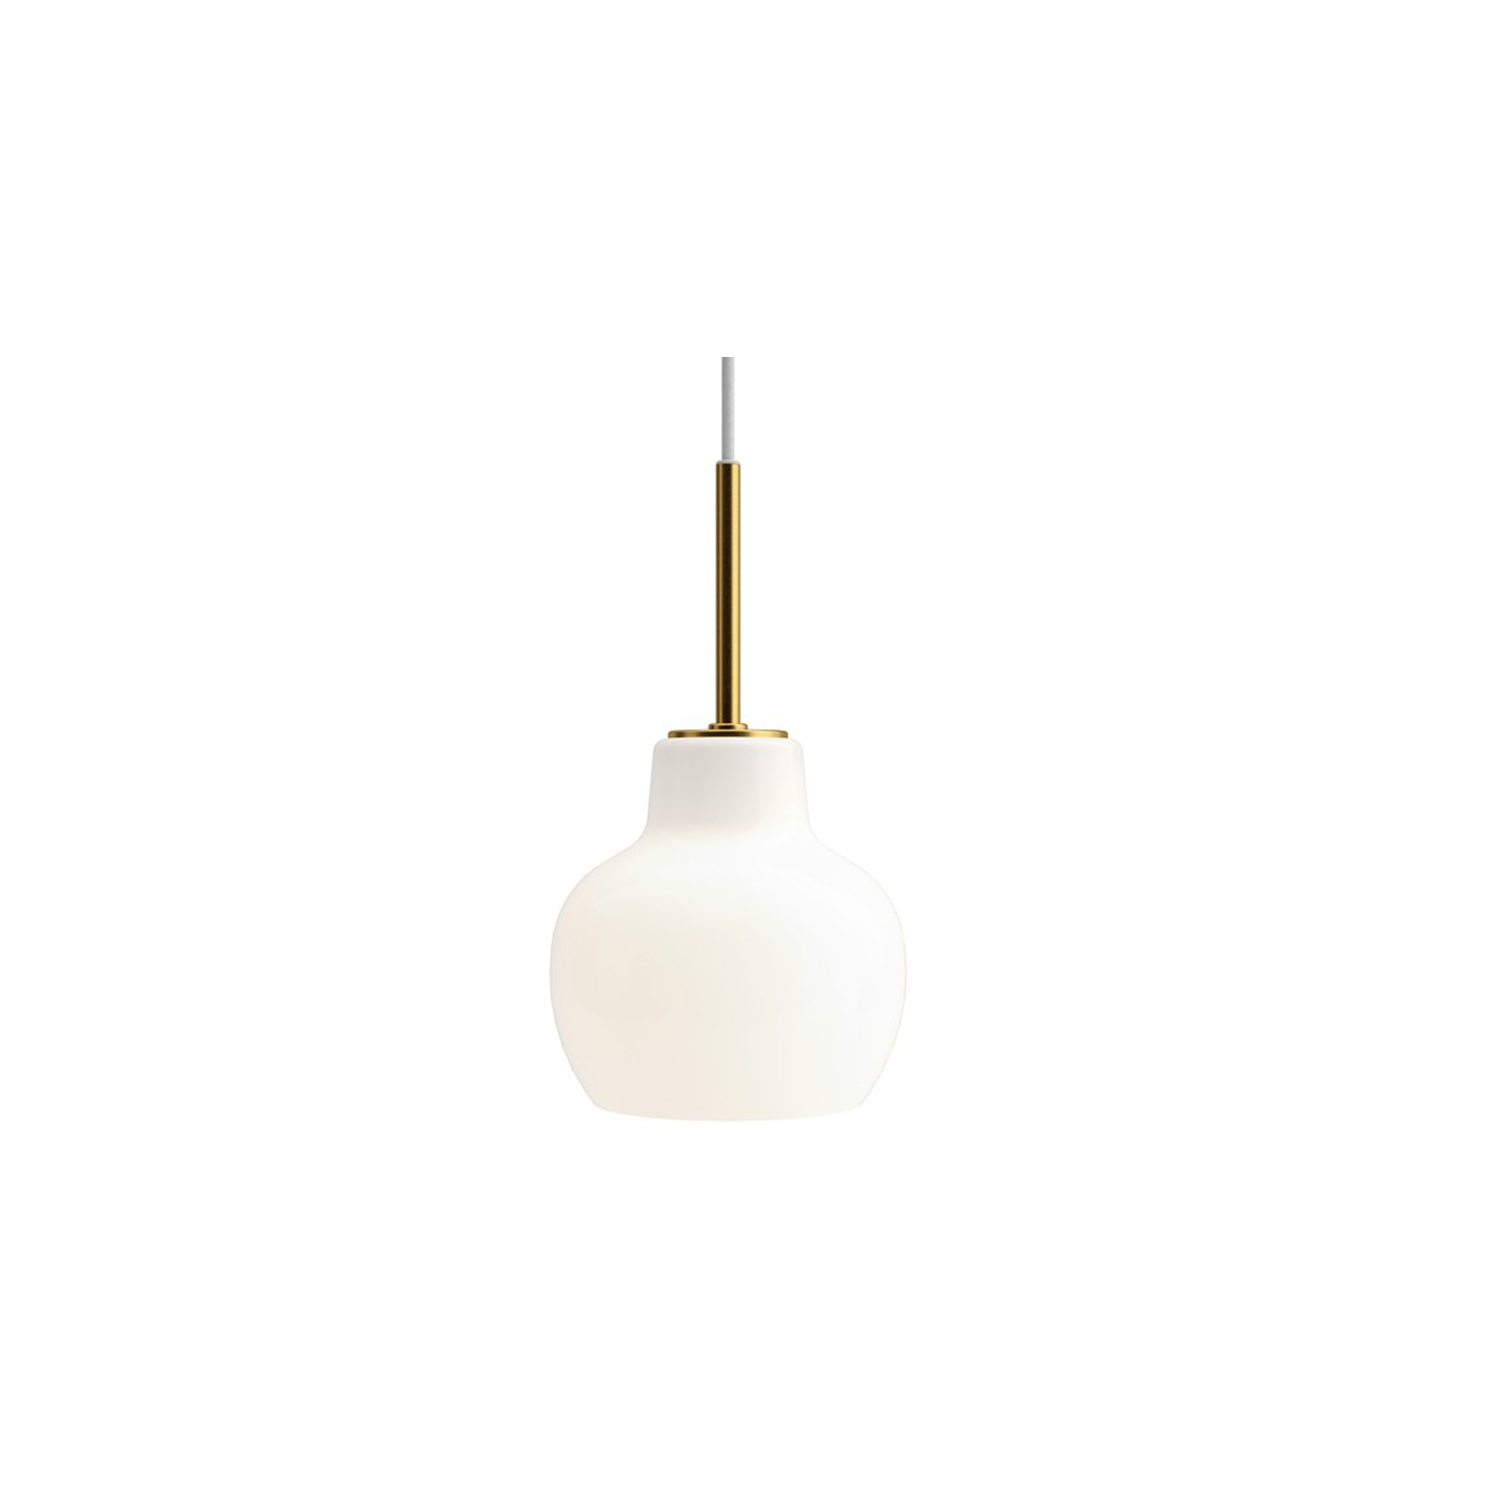 VL Ring Crown 1 Pendant Light - The pendant emits light directed primarily downwards. The opal glass provides a comfortable and uniform illumination of the area around the fixture.   | Matter of Stuff